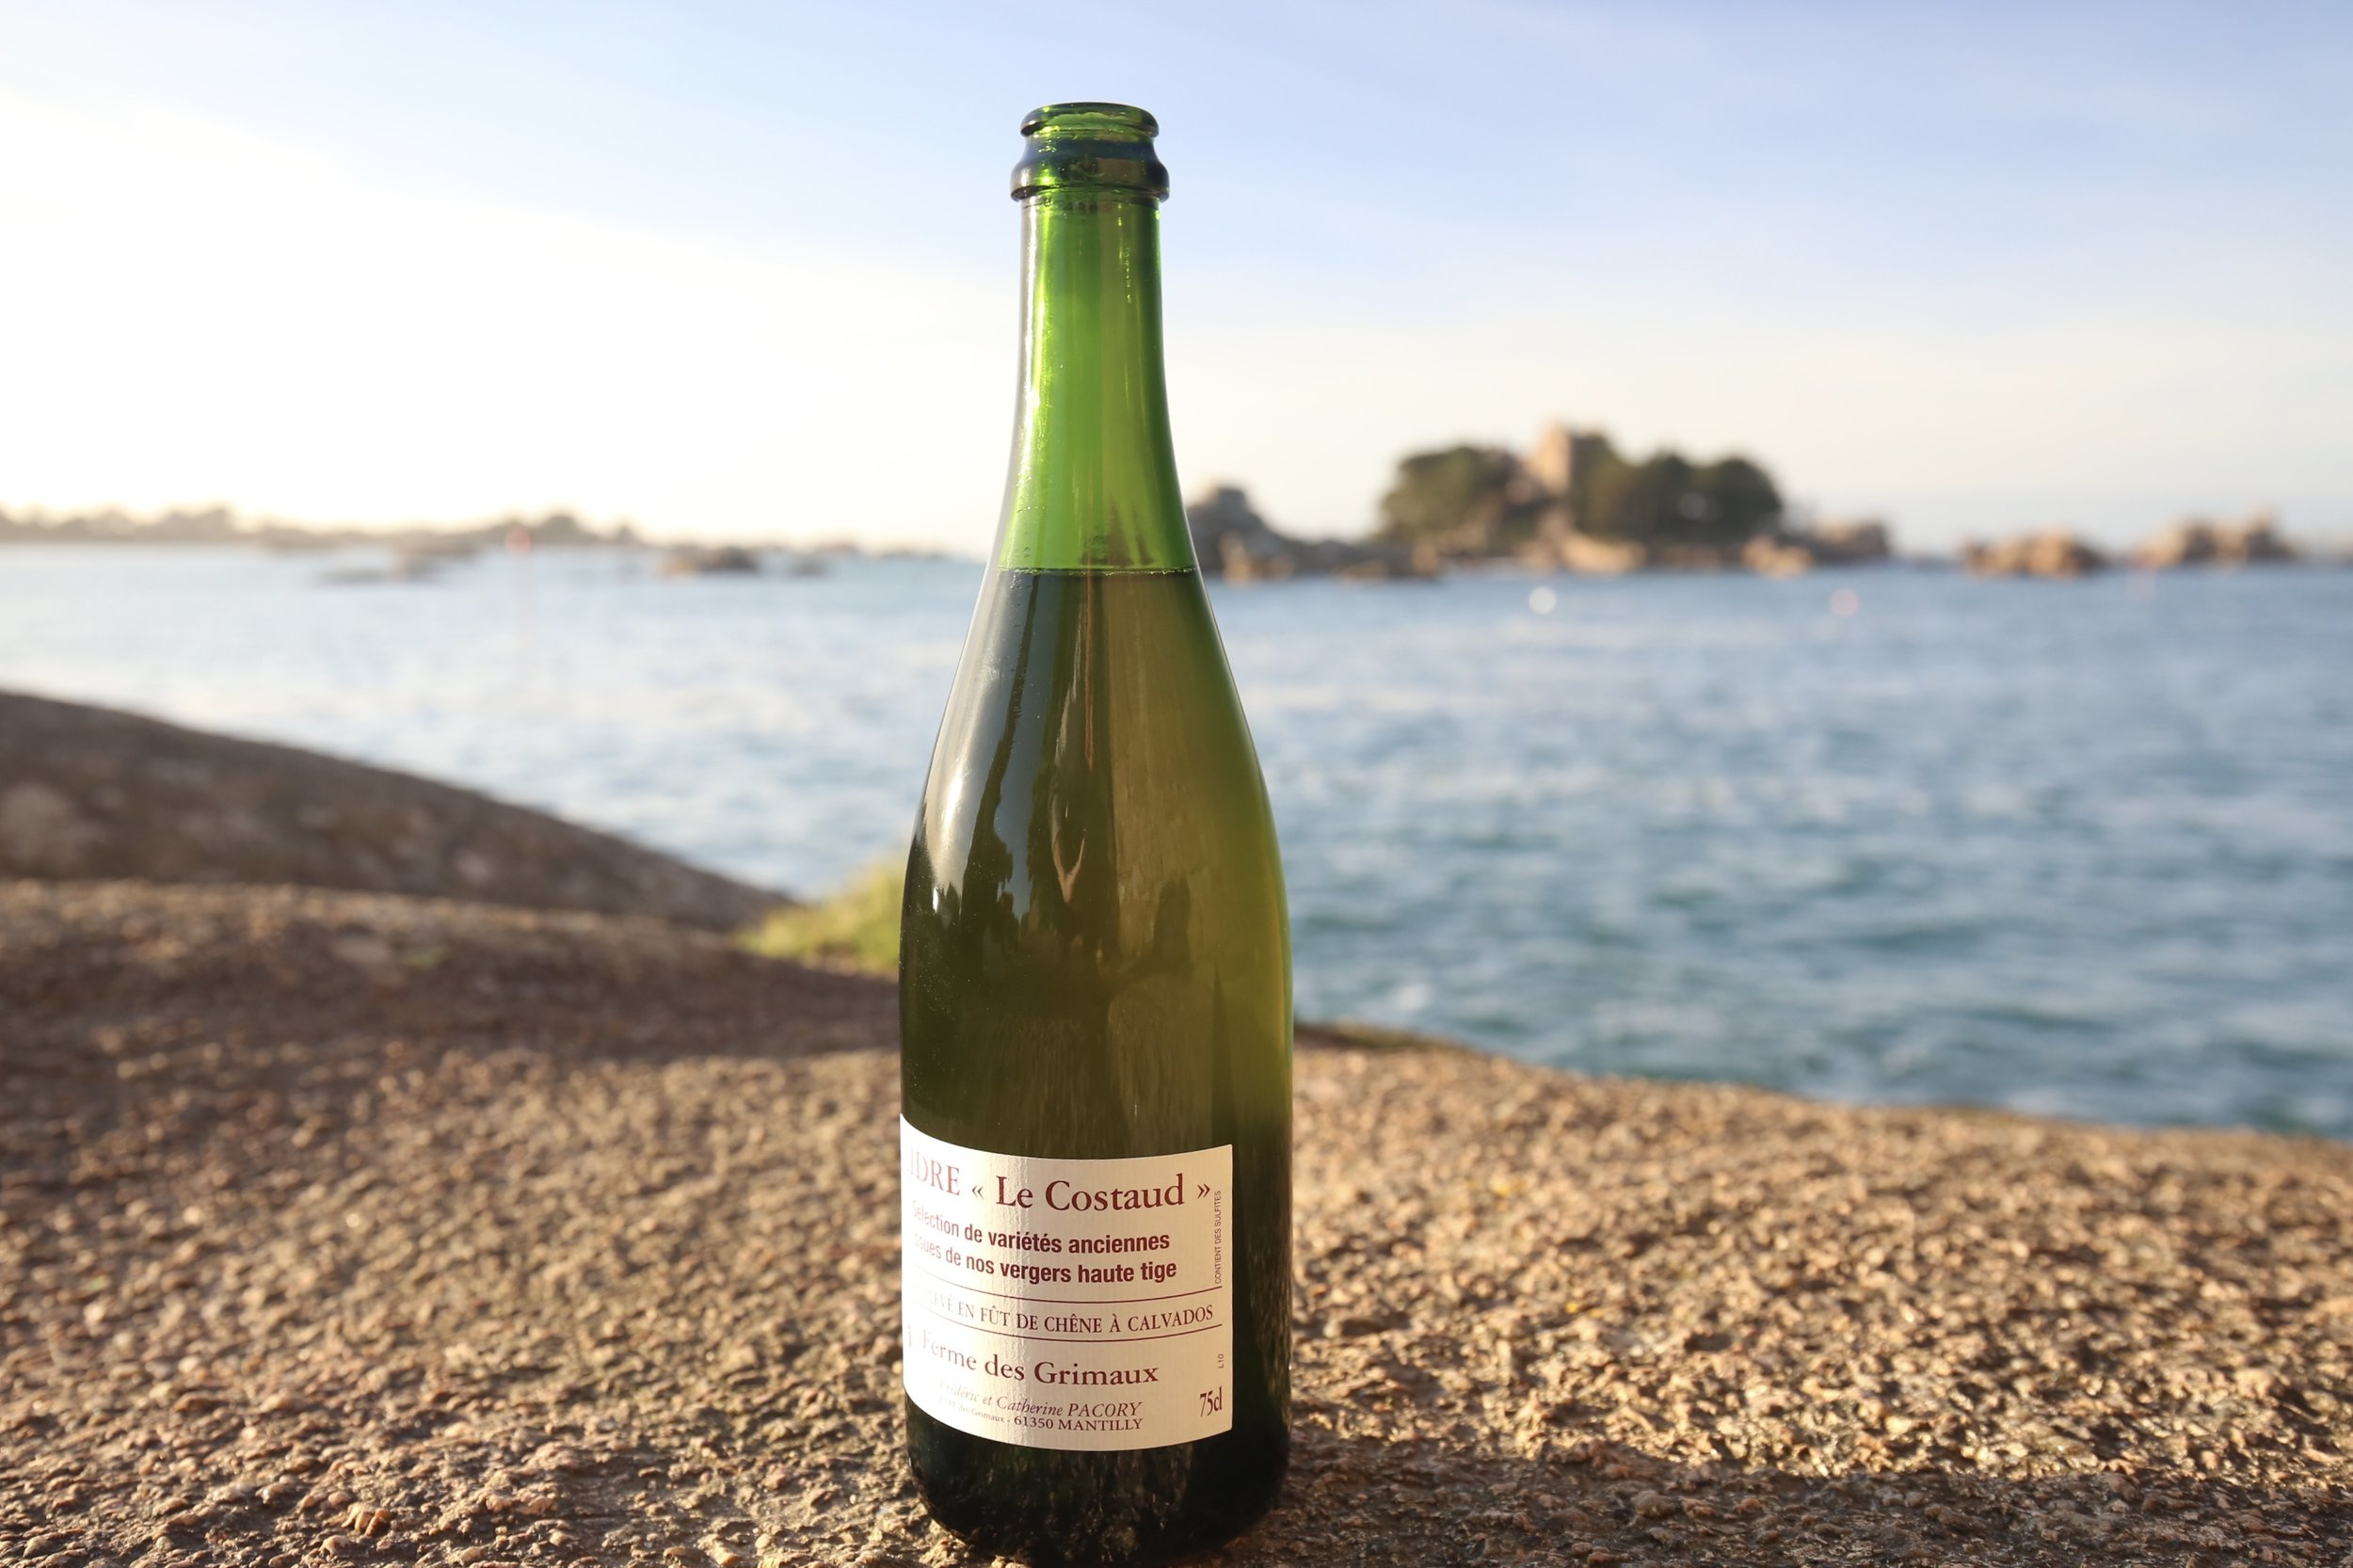 A bottle of real French cider from Brittany, picnic on the Rose Coast of France.